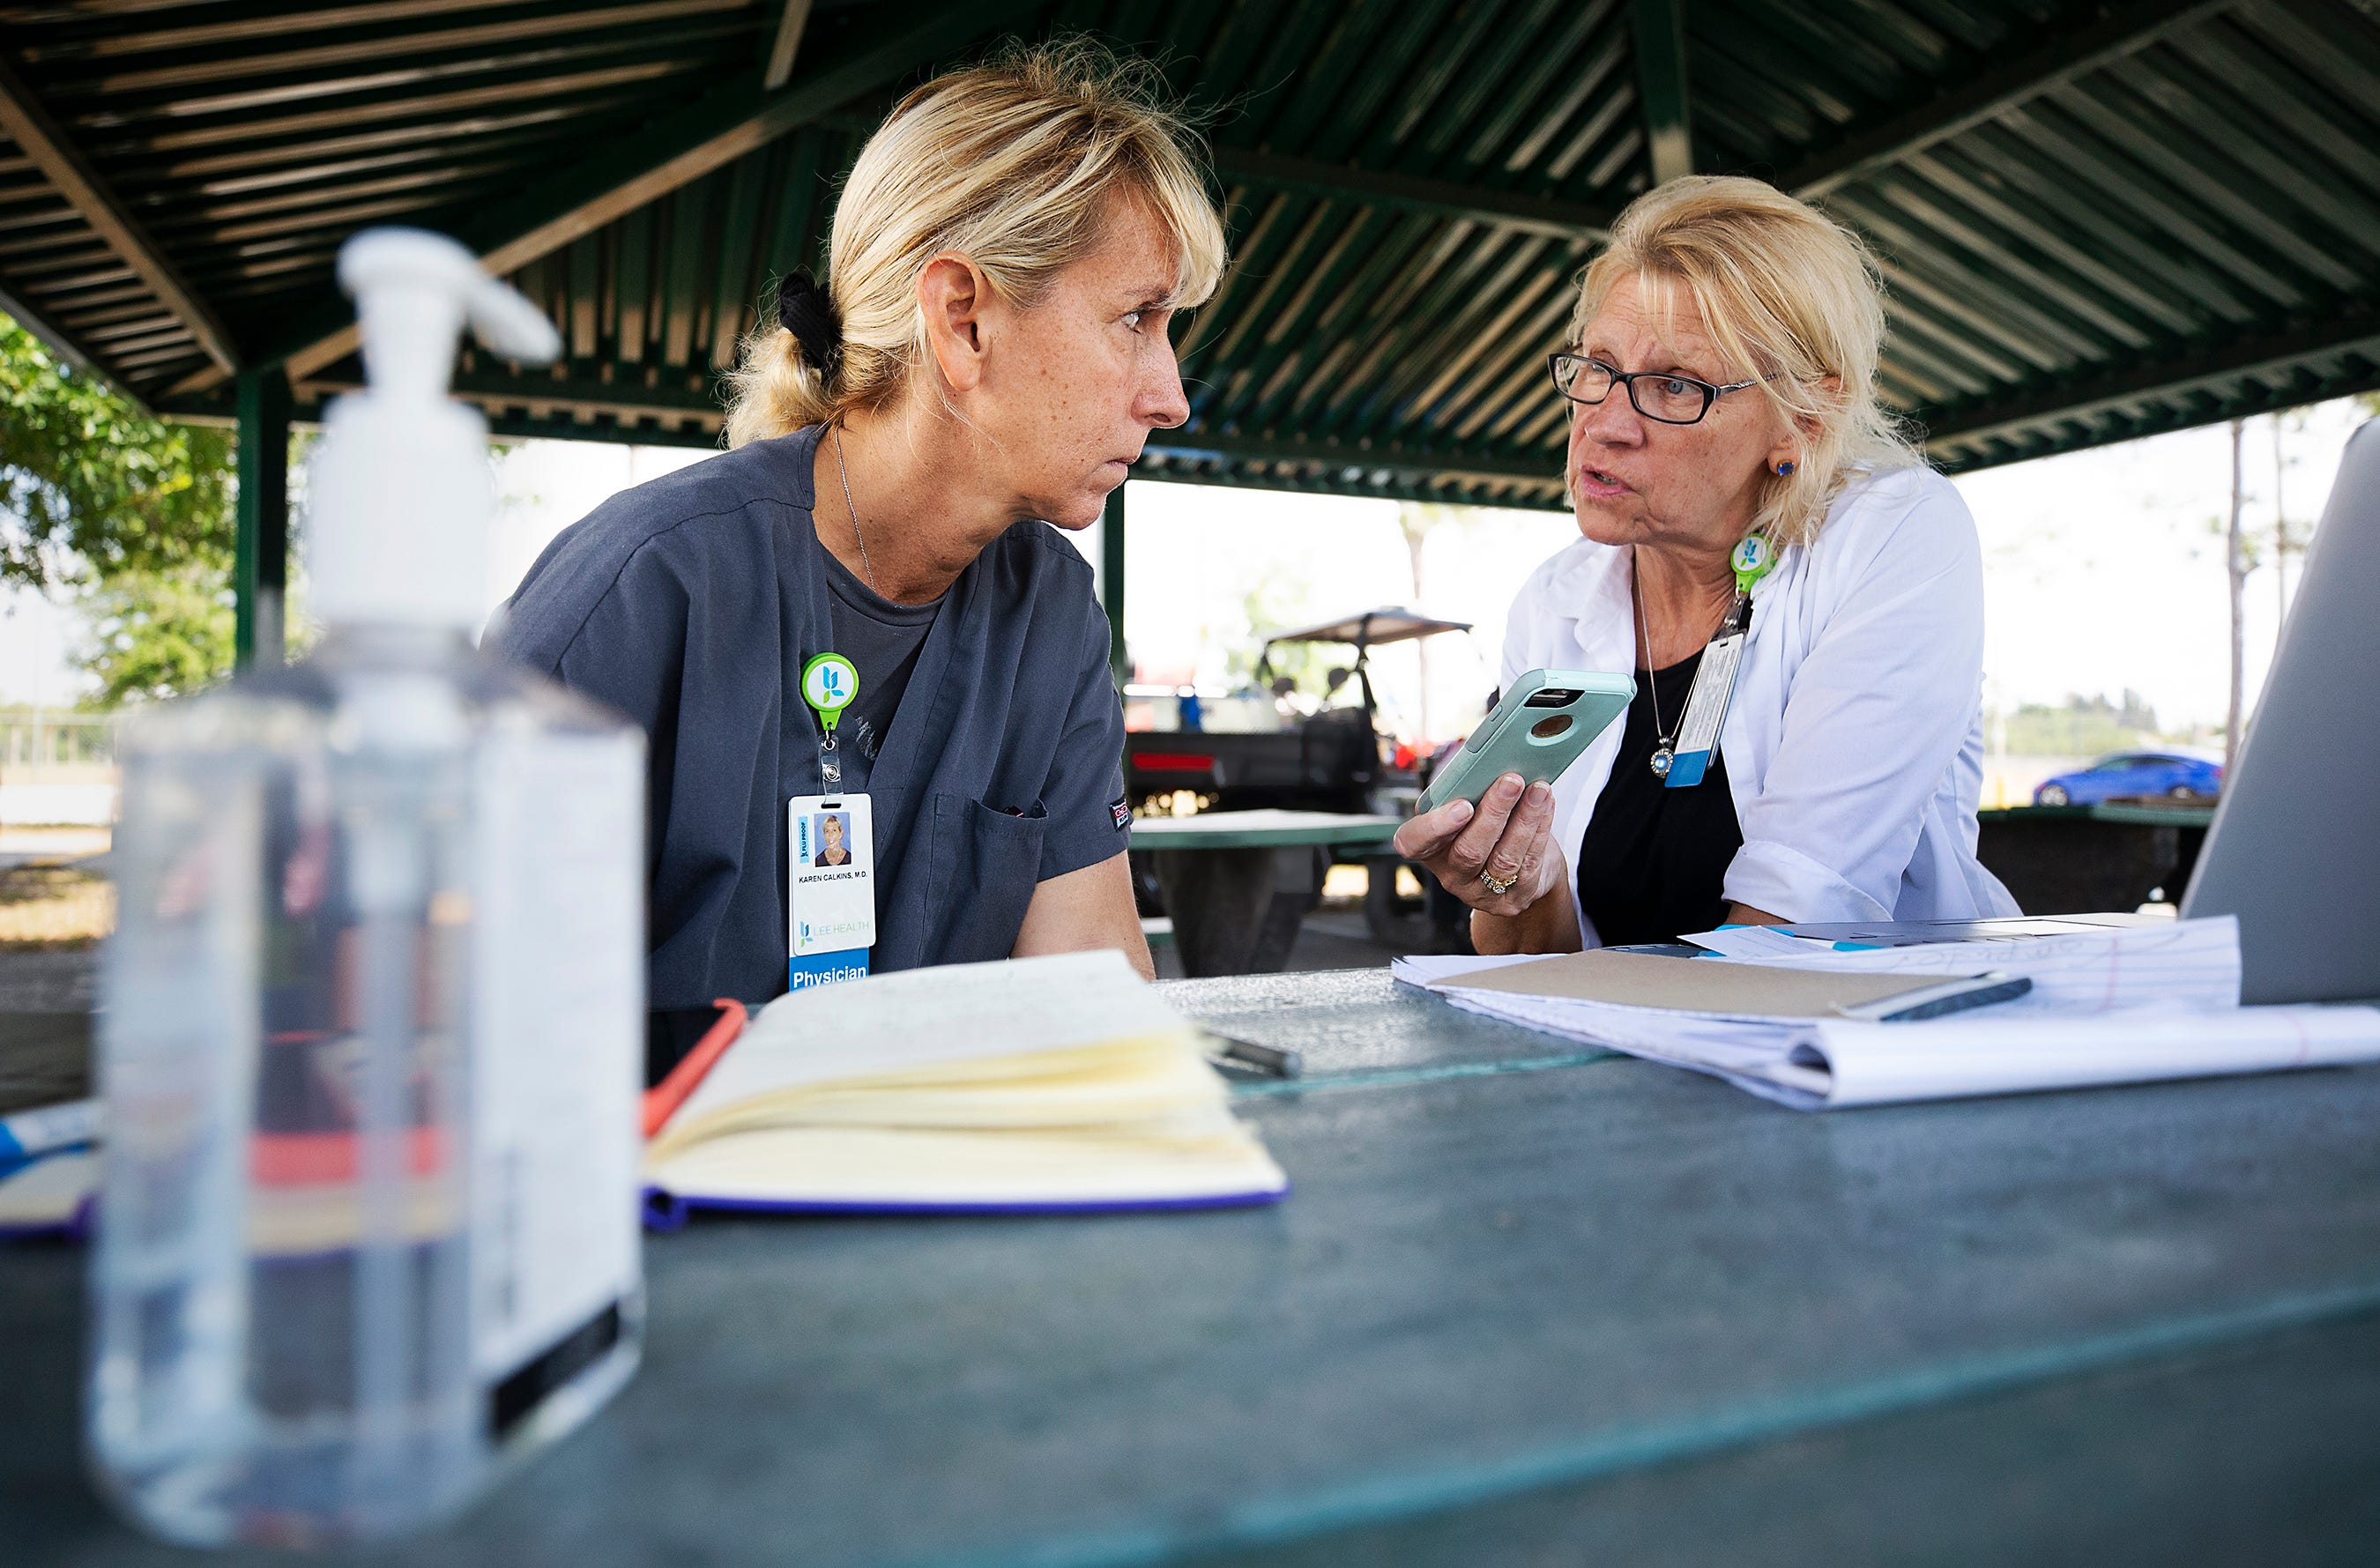 Dr. Karen Calkins and Kathy Richards-Bessshare give COVID-19 testing updates on a conference call at a mobile testing site setup in a park in Cape Coral, Fla.